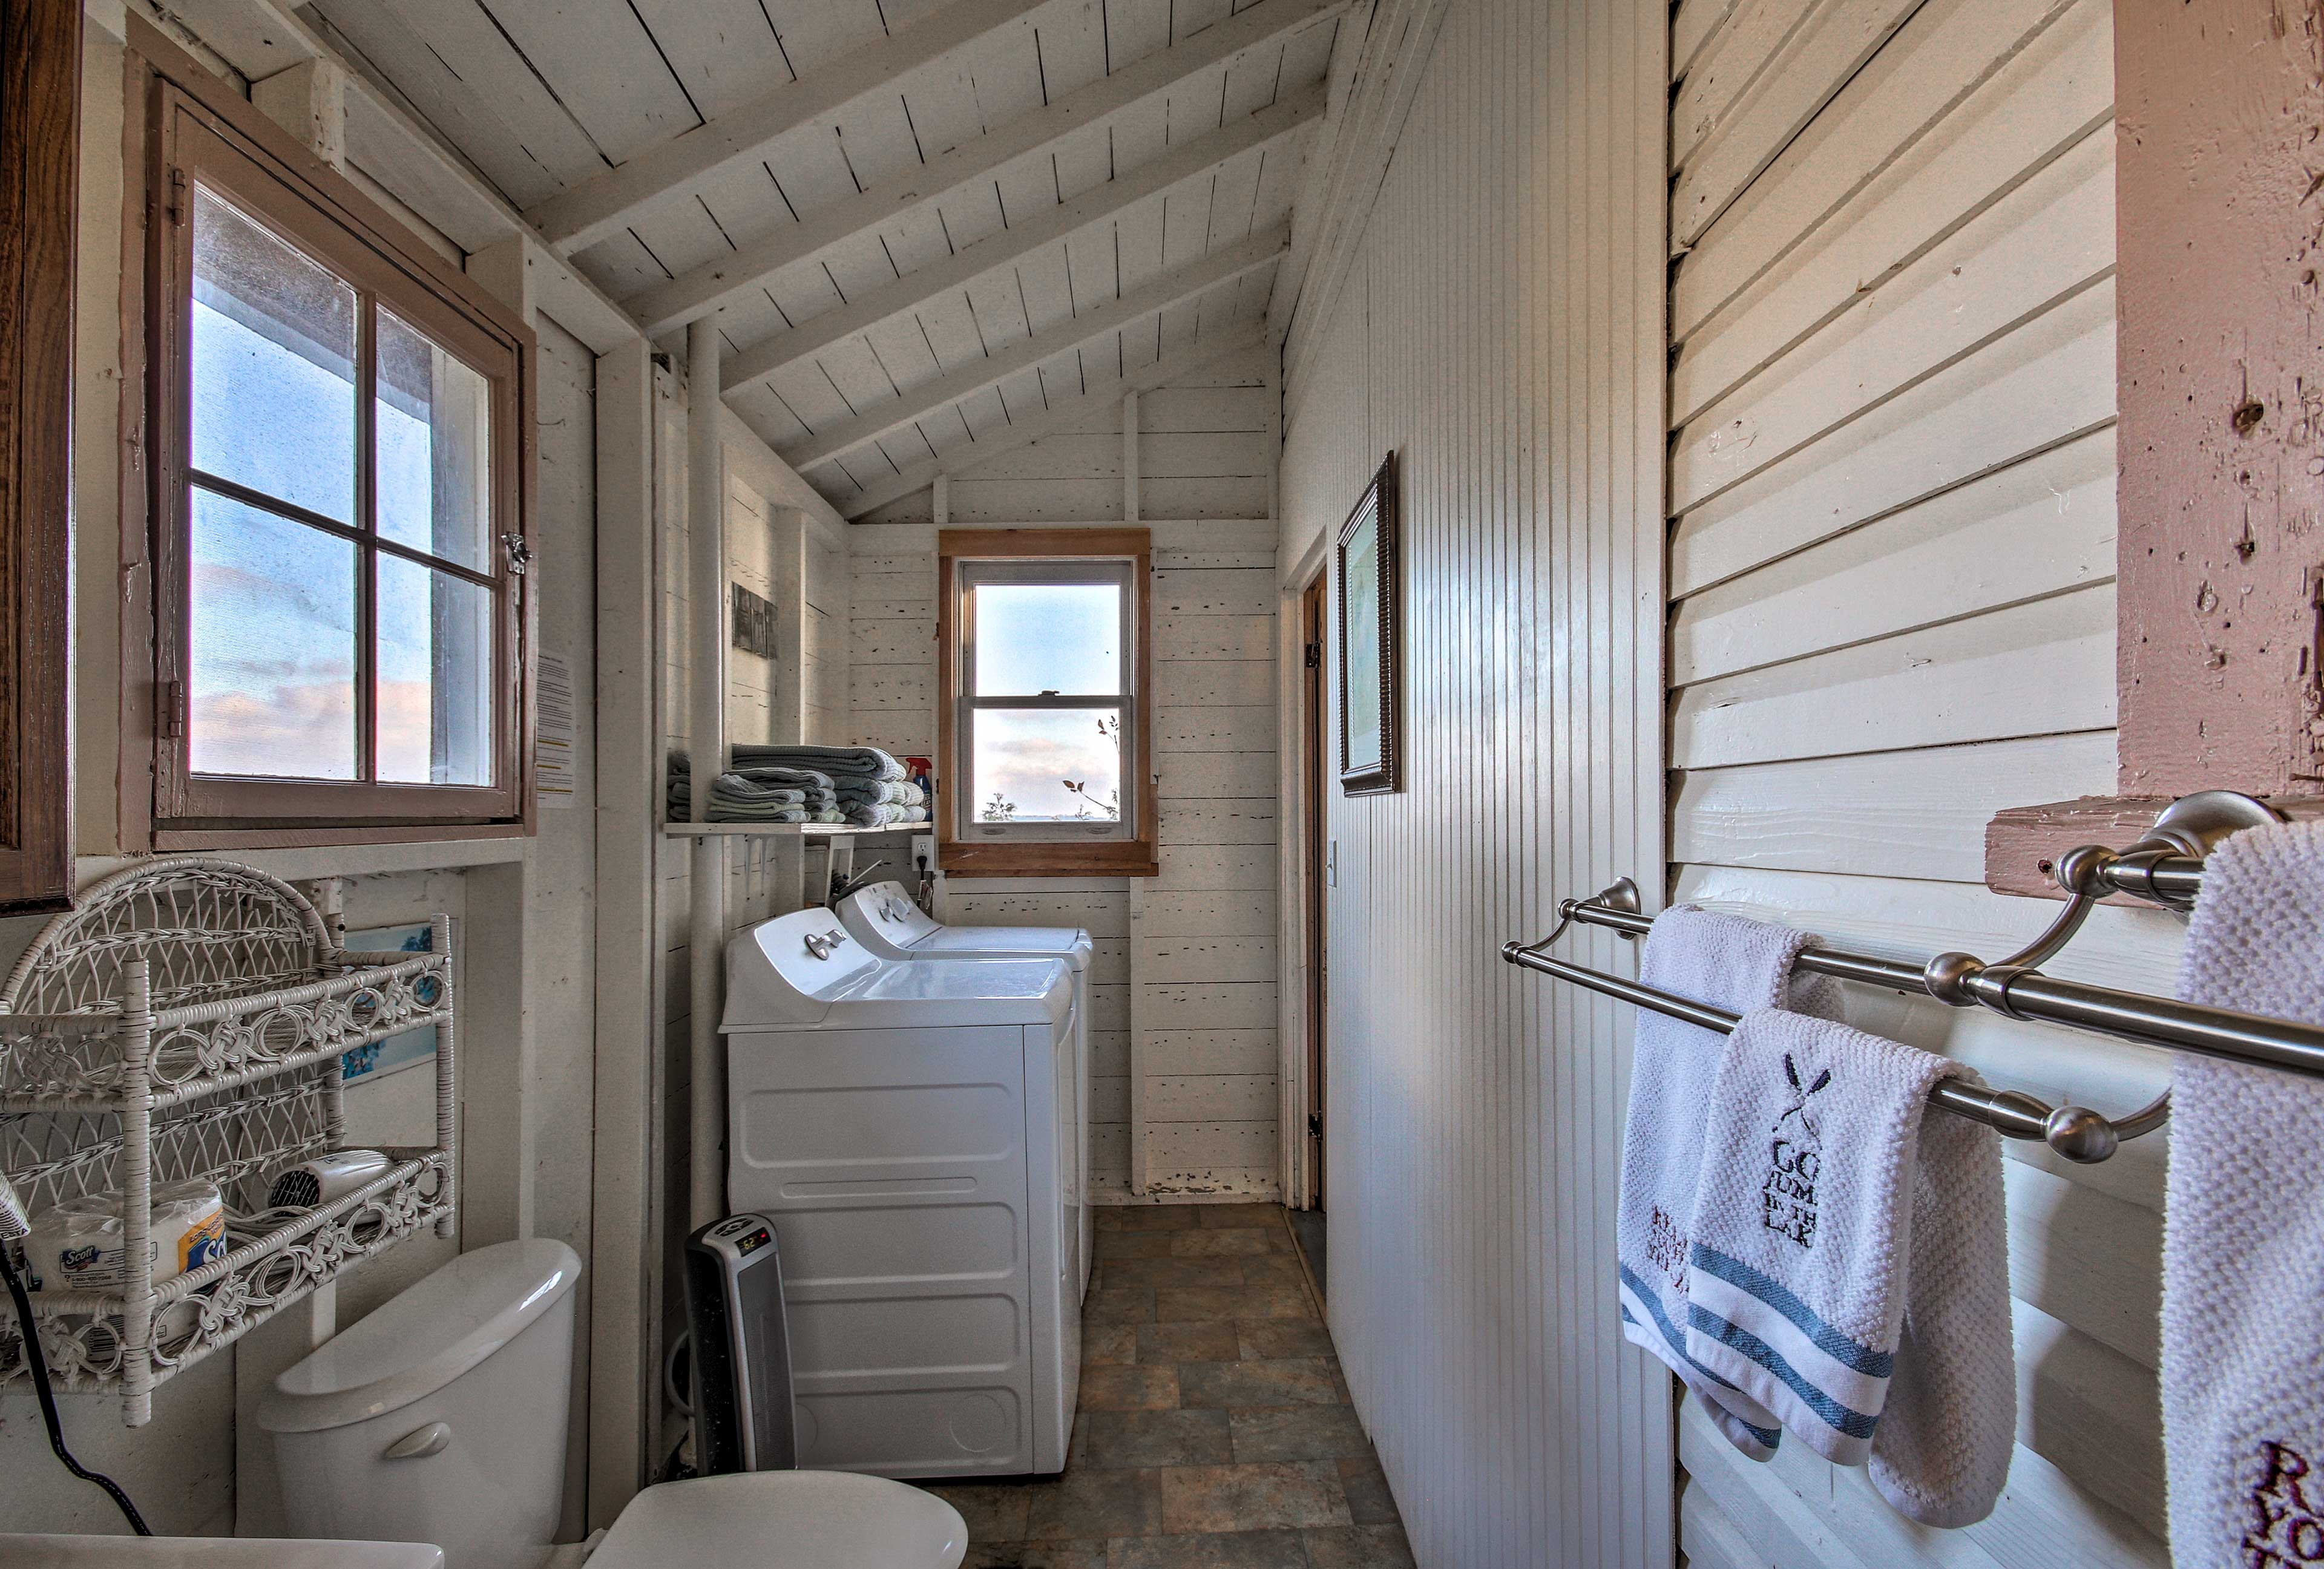 The full-sized laundry machines are located in the main bathroom.